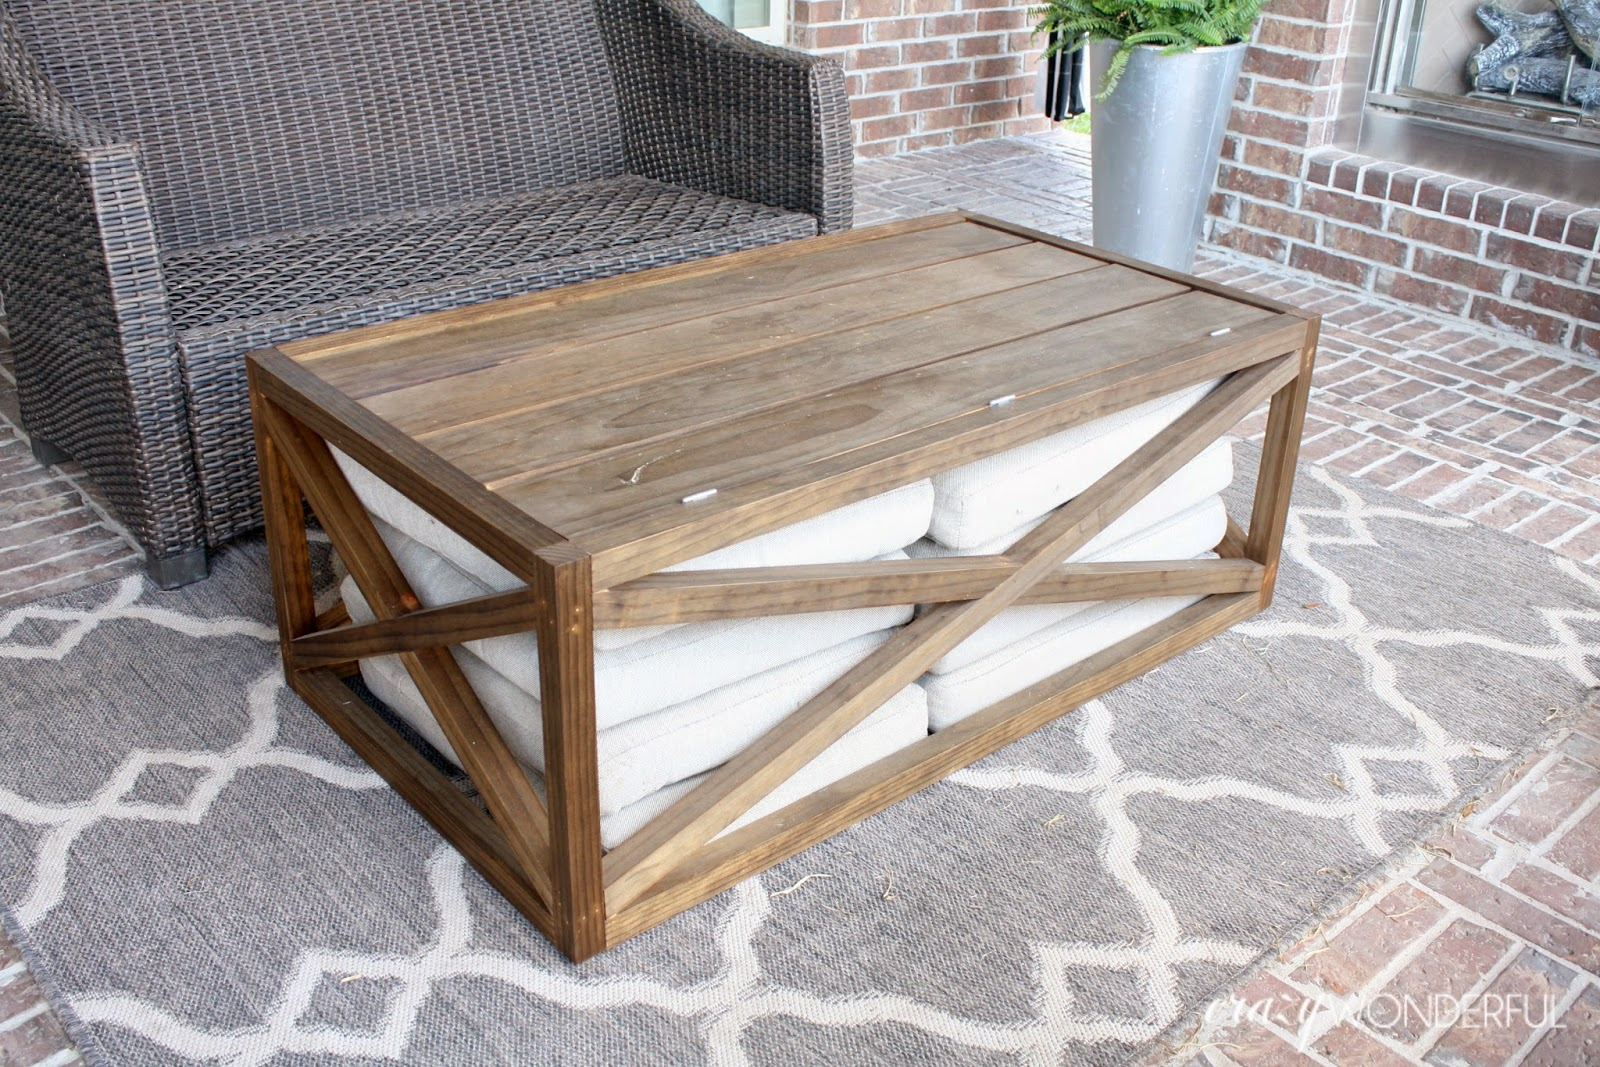 acacia wood end table probably perfect fun diy outdoor coffee plans industrial ana white with storage crazy wonderful cooler round easy ideas pallet patio simple designs